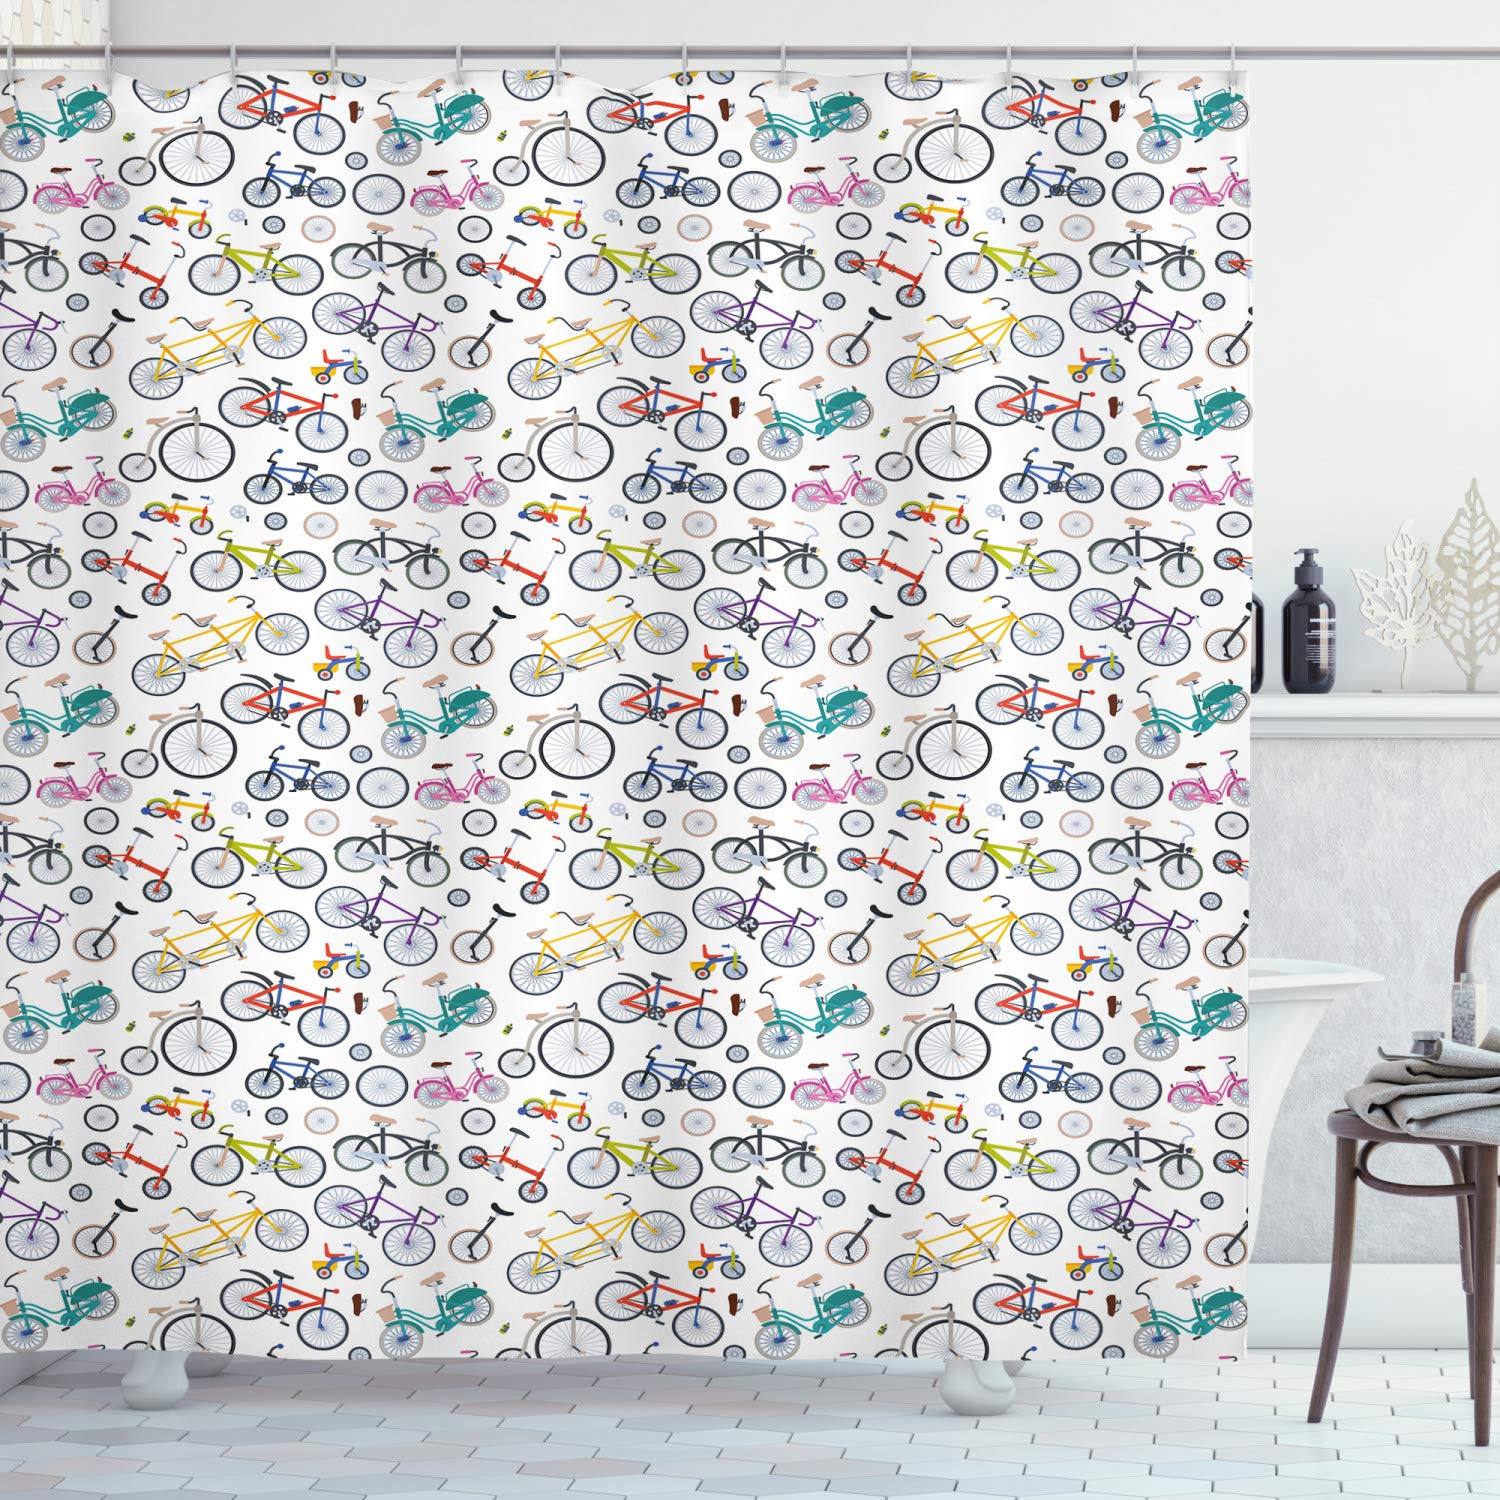 """Ambesonne Bicycle Shower Curtain, Retro Style Colorful Bicycles of All Styles and for All Age Groups Training Wheels, Cloth Fabric Bathroom Decor Set with Hooks, 84"""" Long Extra, Teal White"""